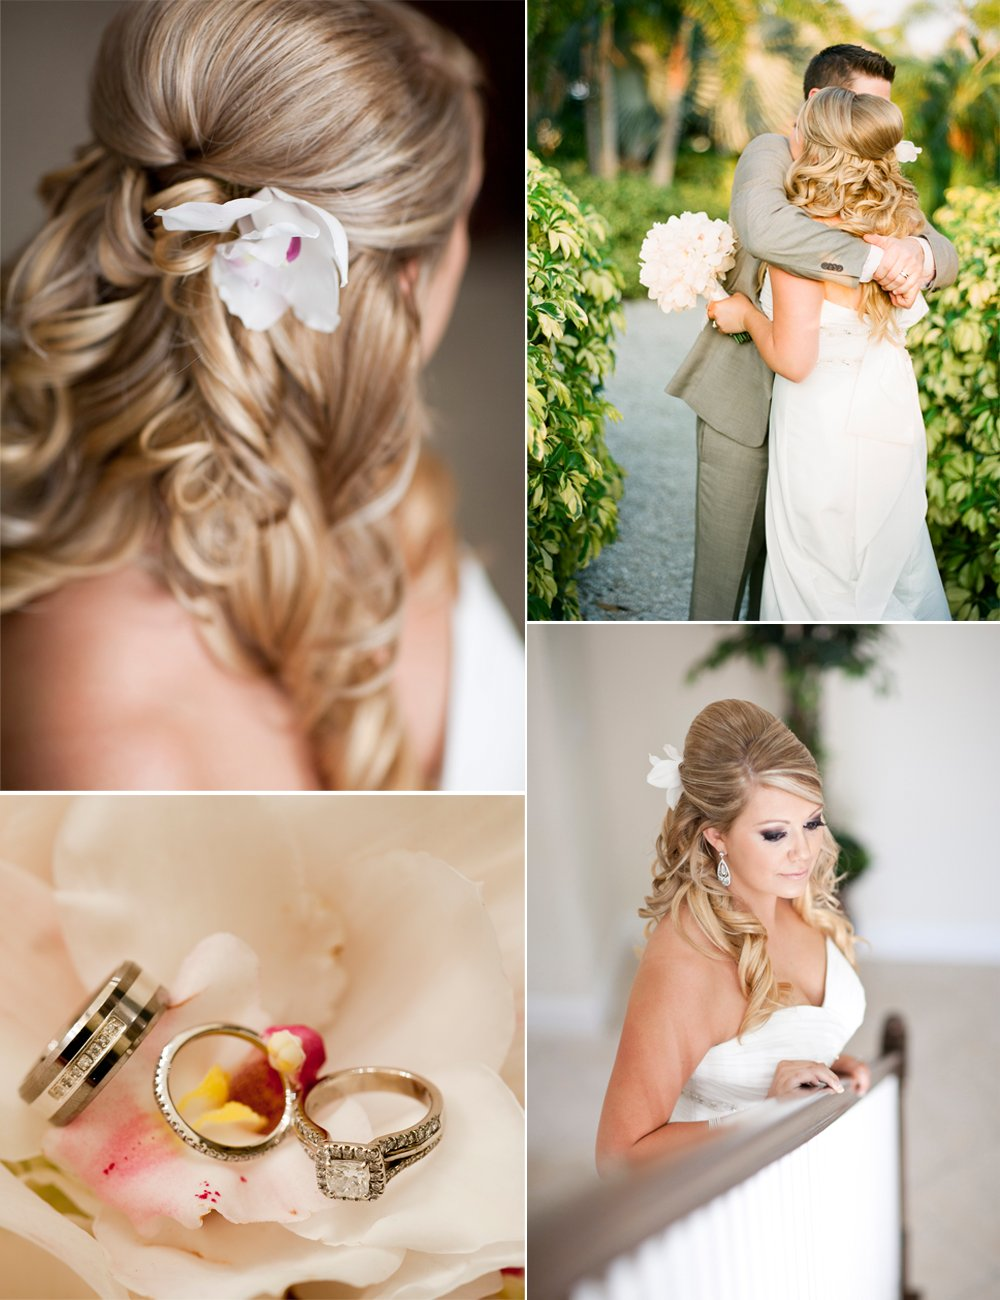 Half-up-wedding-hairstyle-real-weddings-summer-beach-theme.full